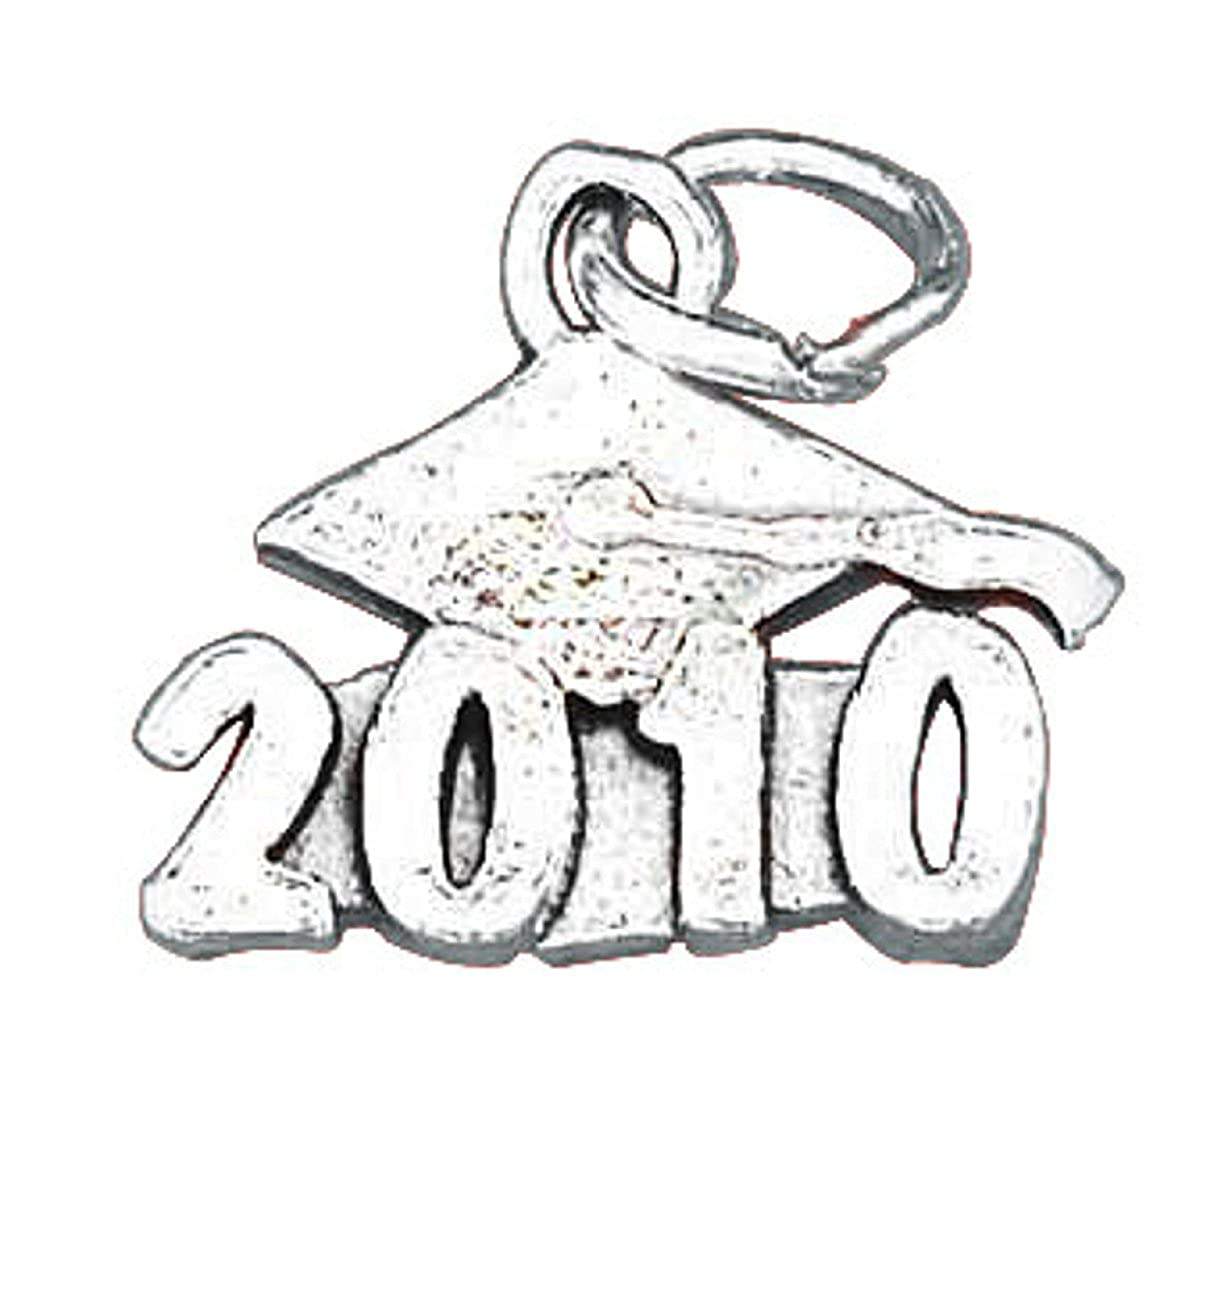 Sterling Silver Girls .8mm Box Chain Class Of 2010 Graduation Mortarboard Cap Pendant Necklace